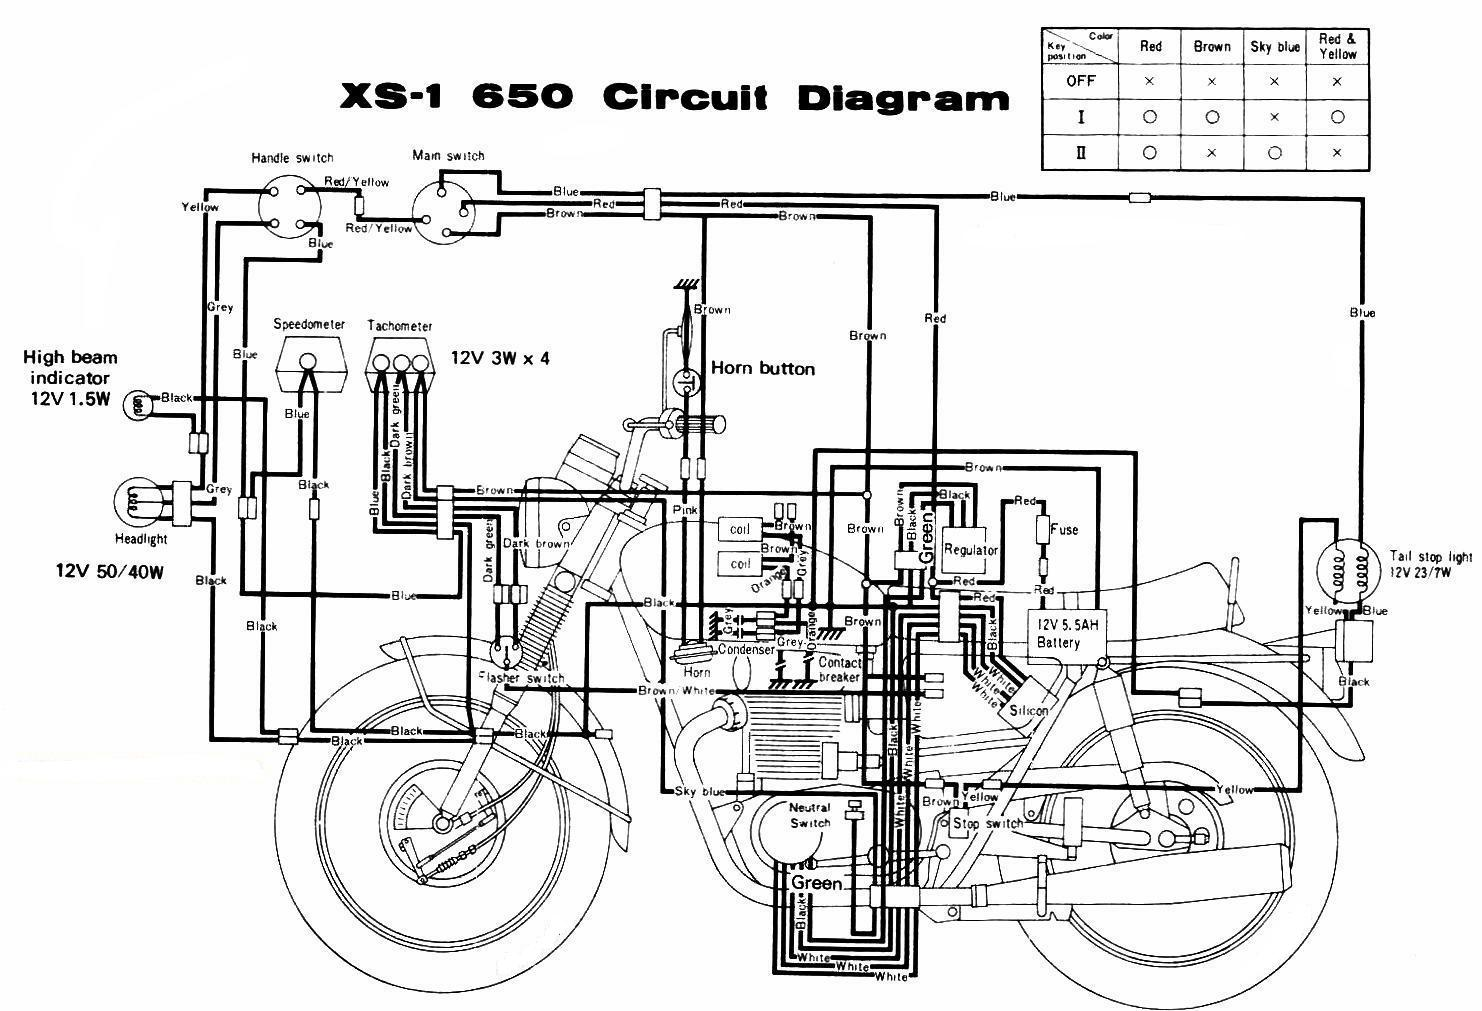 wiring diagrams plumbing diagram pdf hero honda wiring diagram pdf #29